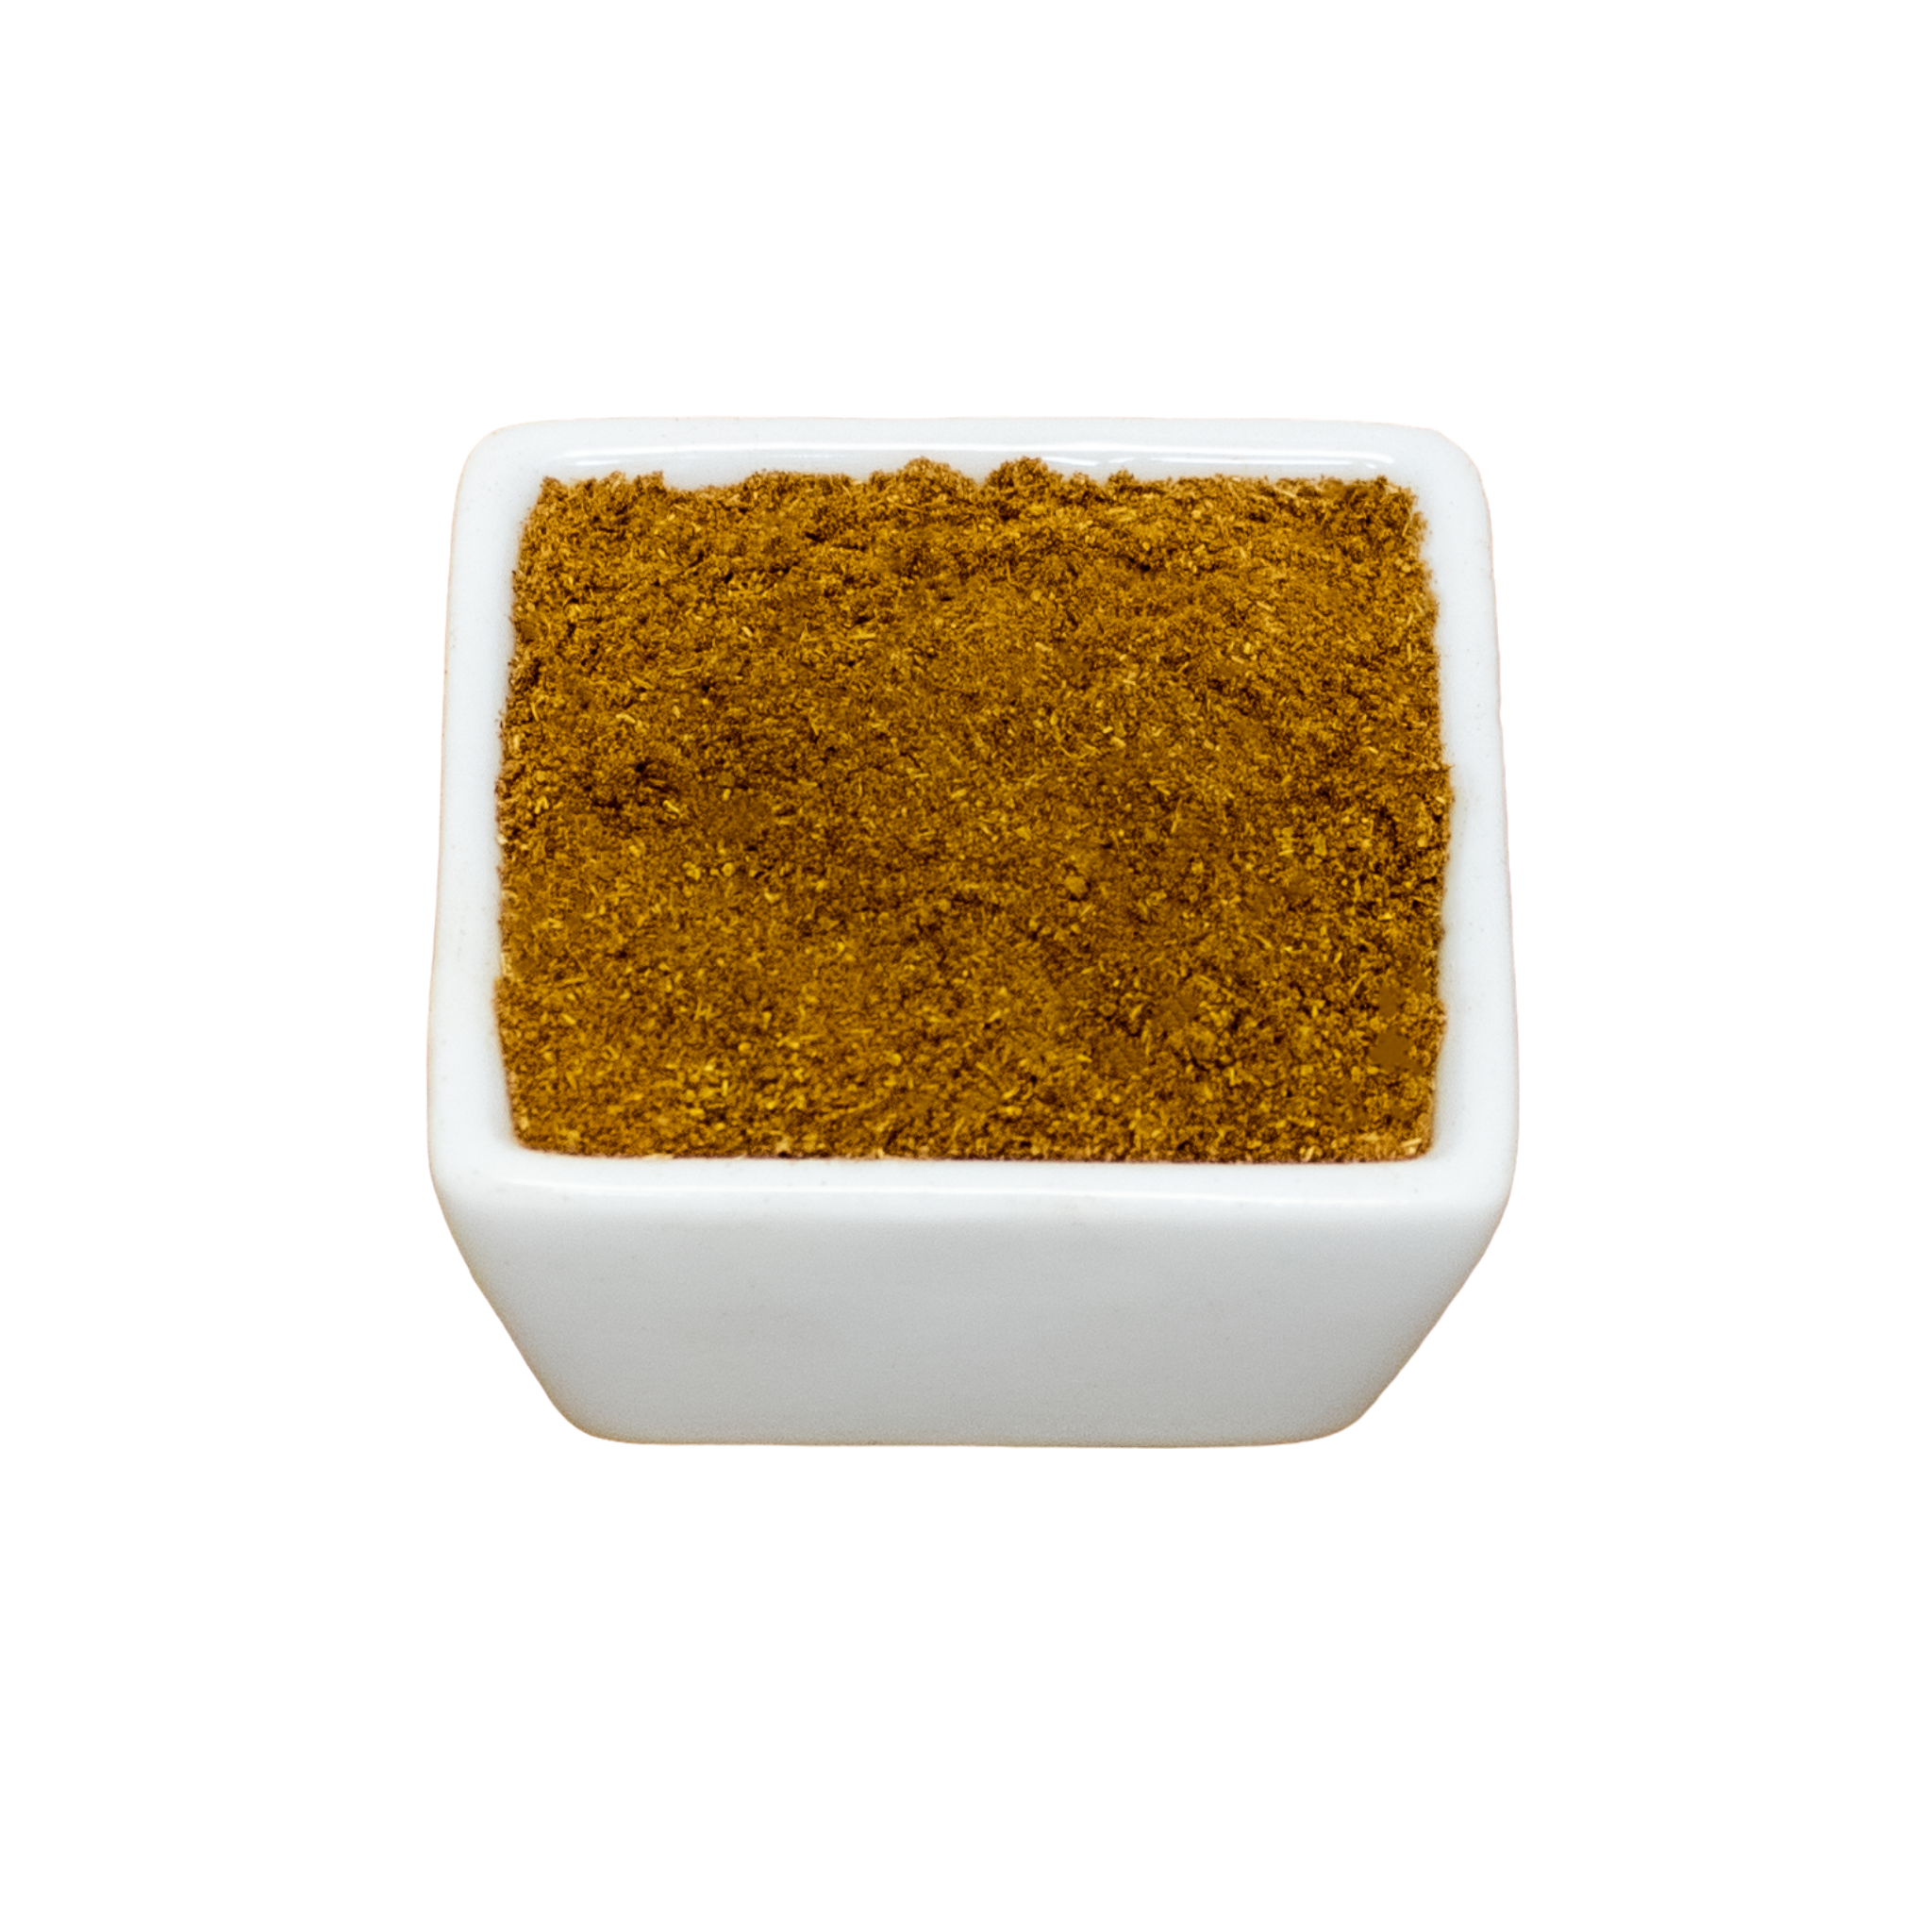 Organic Allspice Powder - Ground